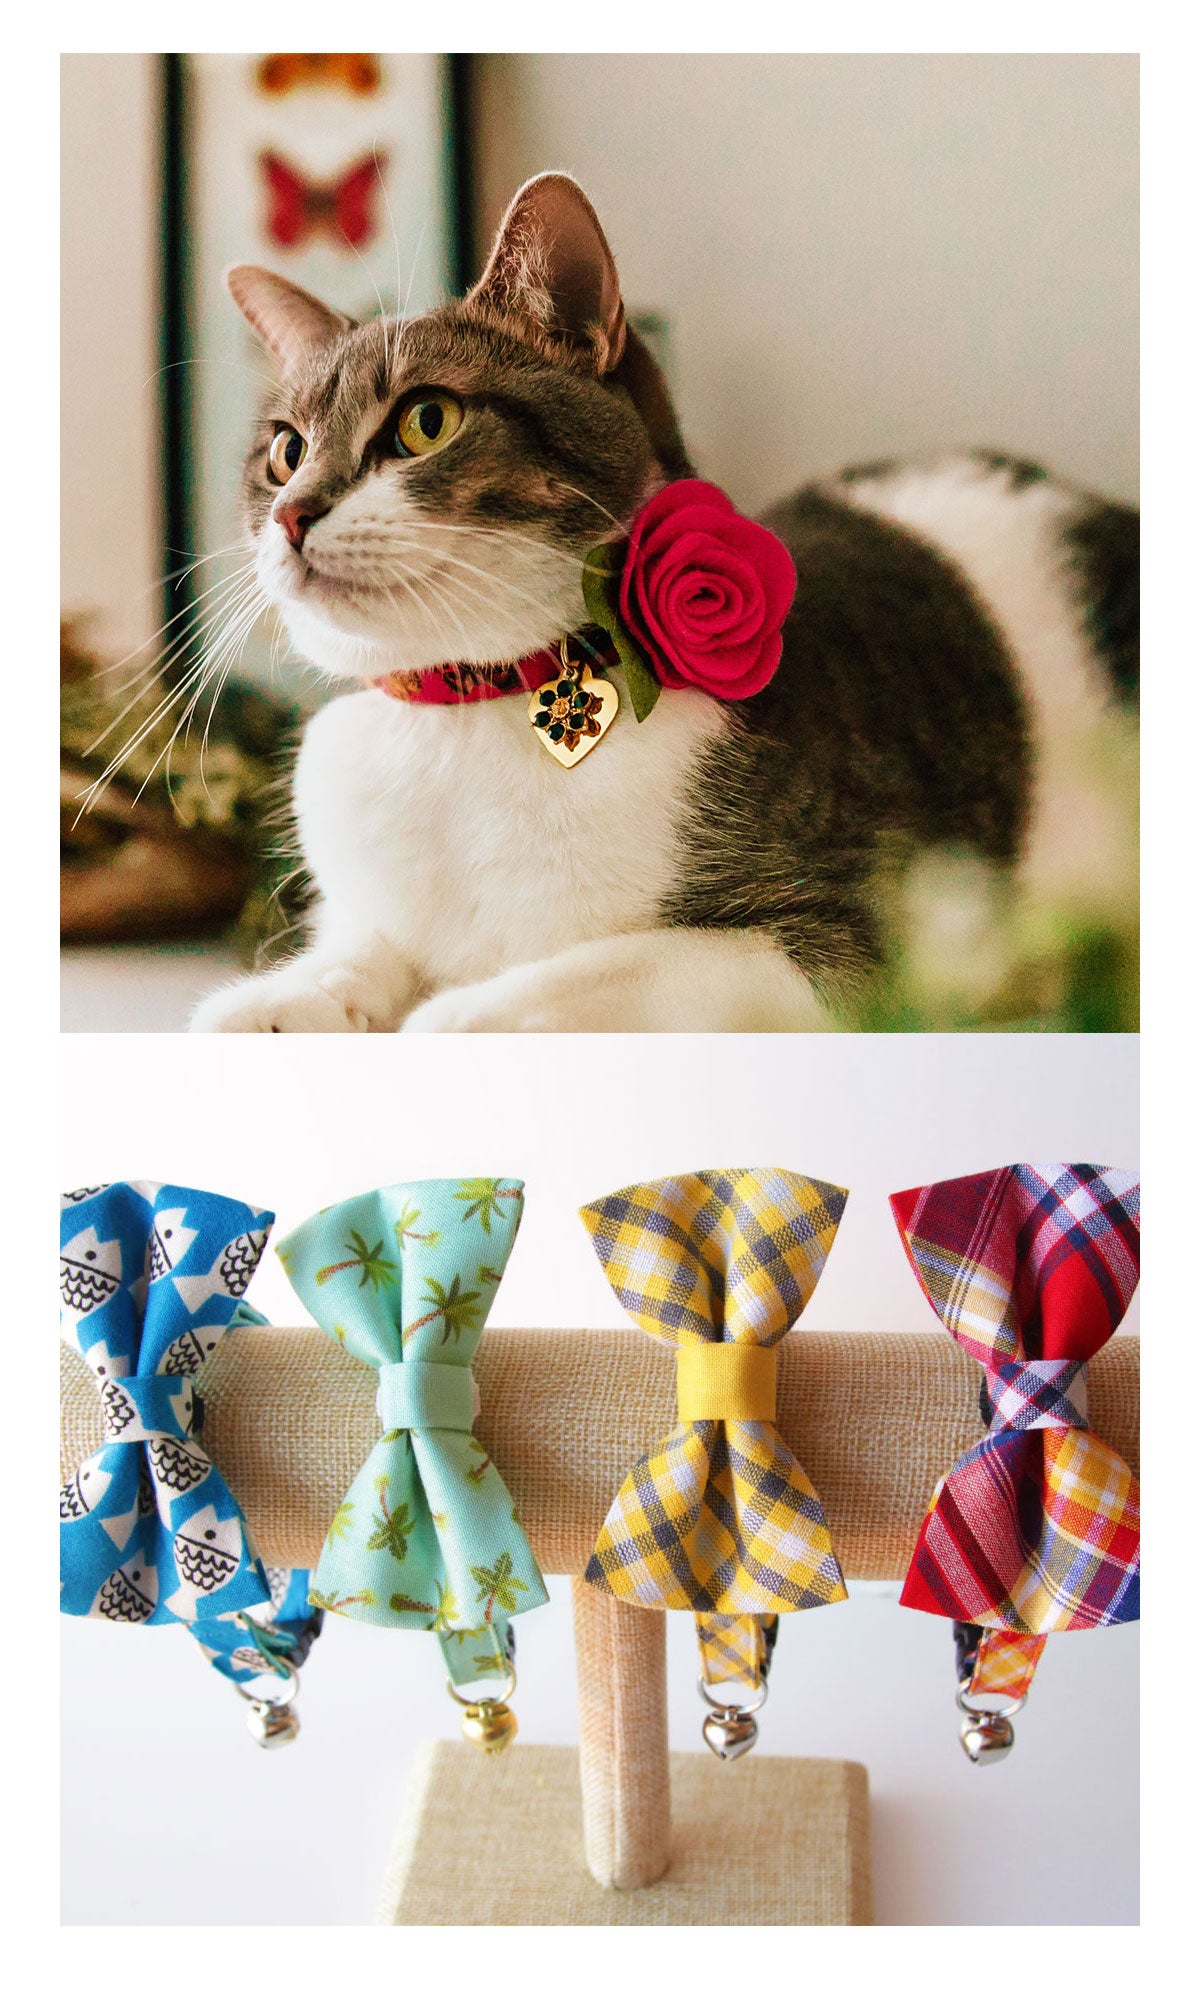 Shop from 300+ unique cat collars, bow ties & accessories.